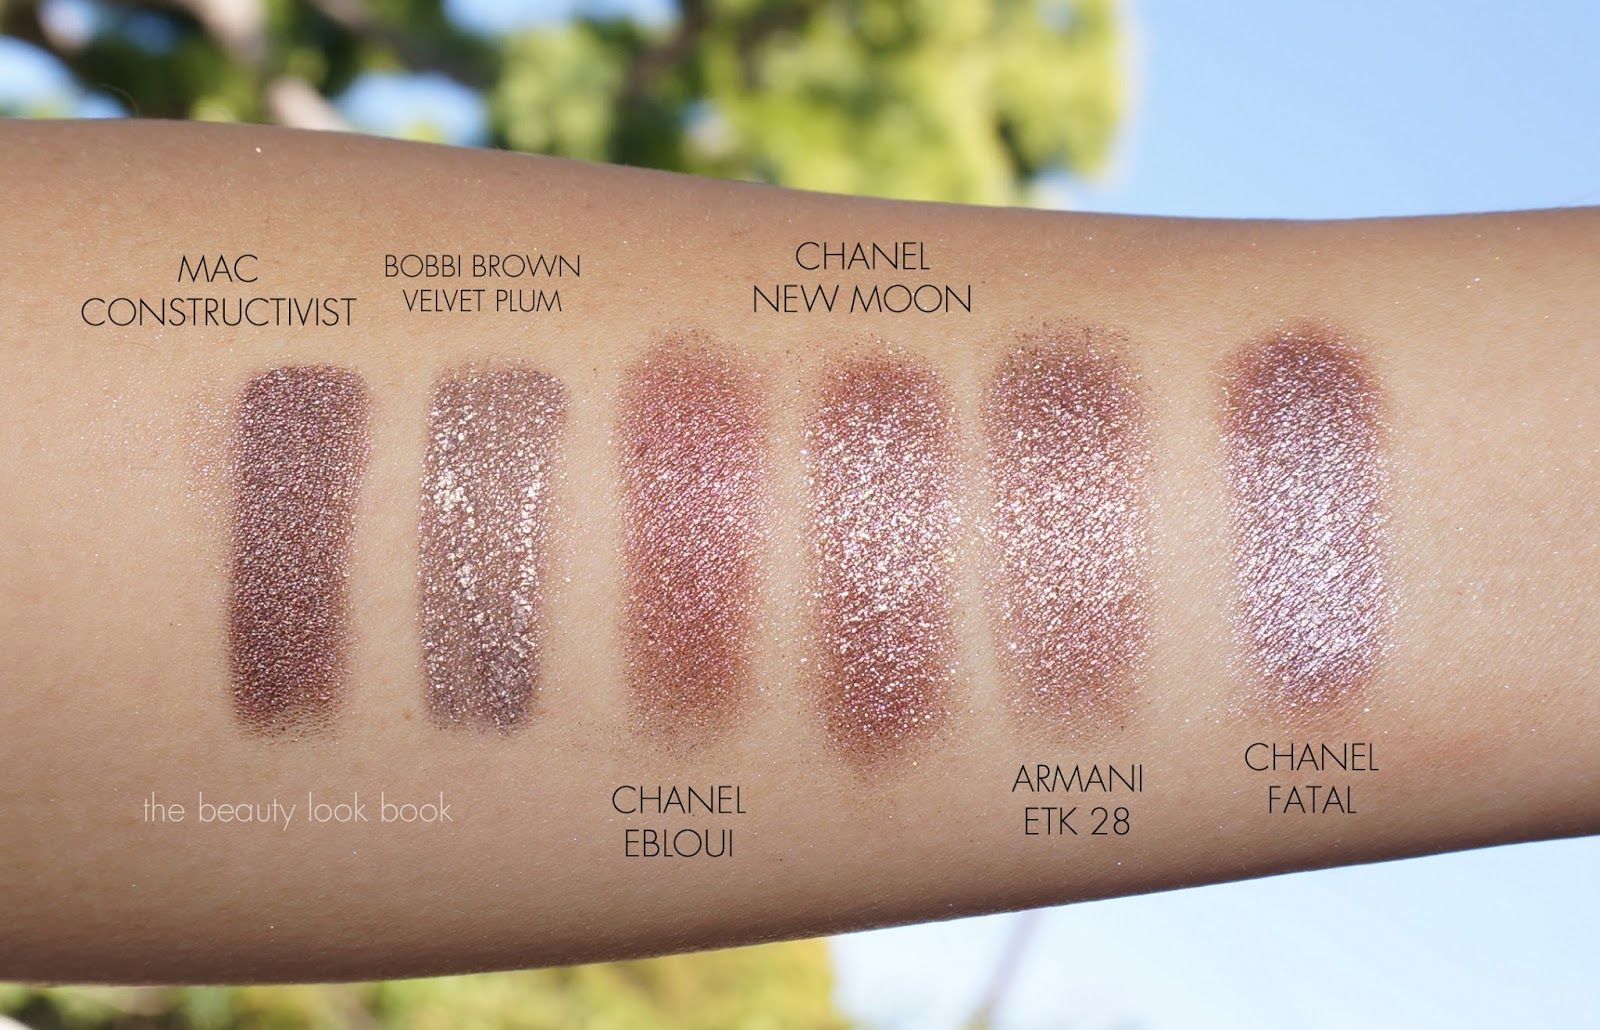 Illusion D'Ombre Long Wear Luminous Eyeshadow by Chanel #21